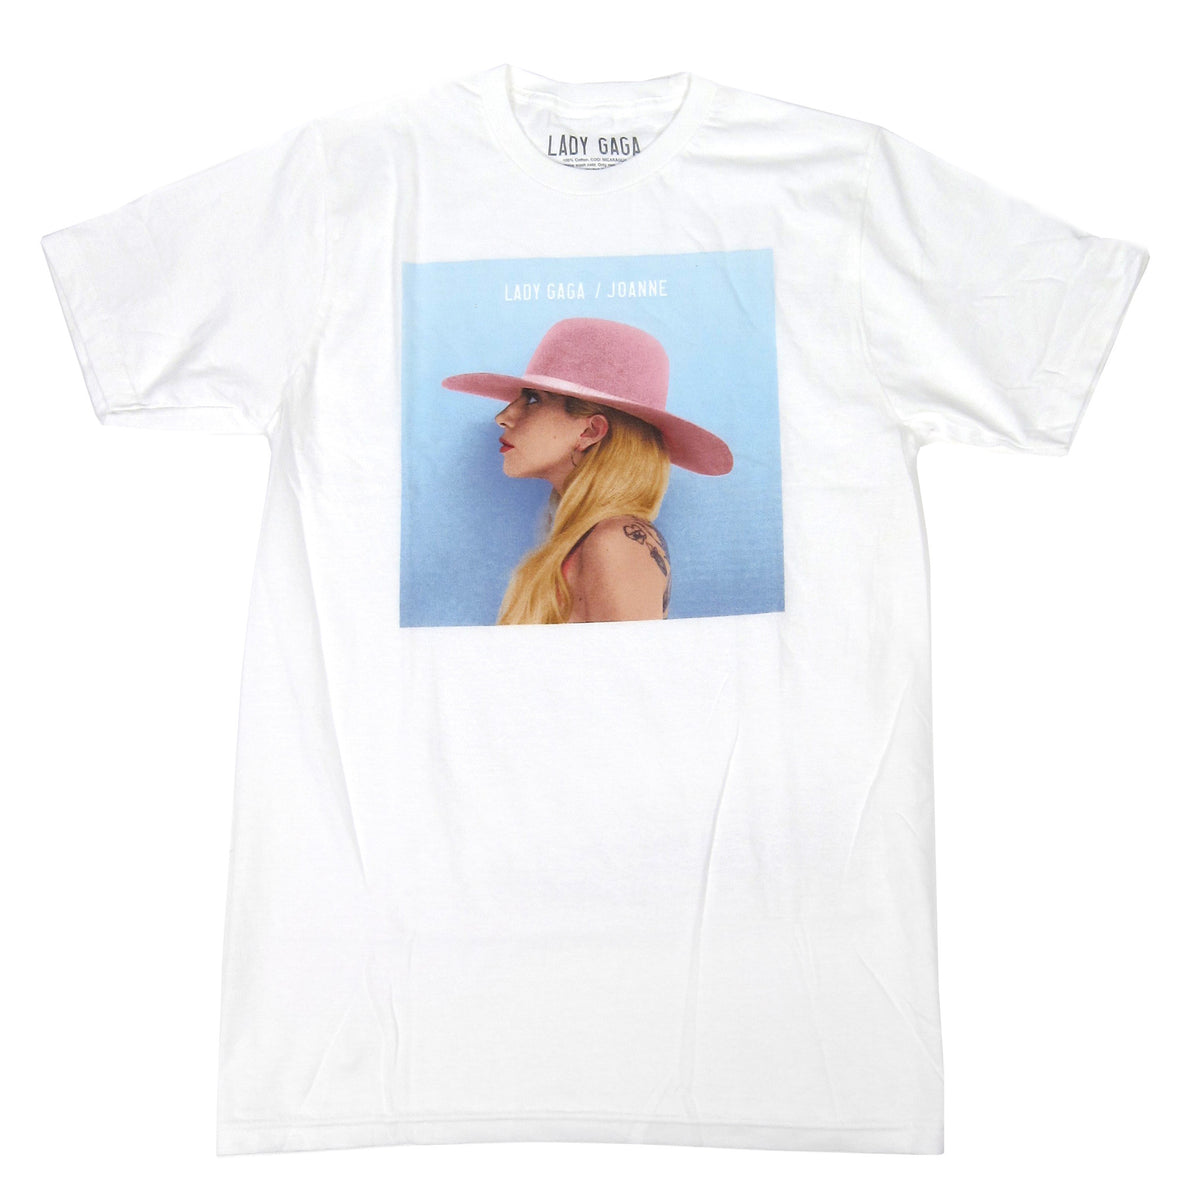 Lady Gaga: Joanne Album Cover Shirt - White